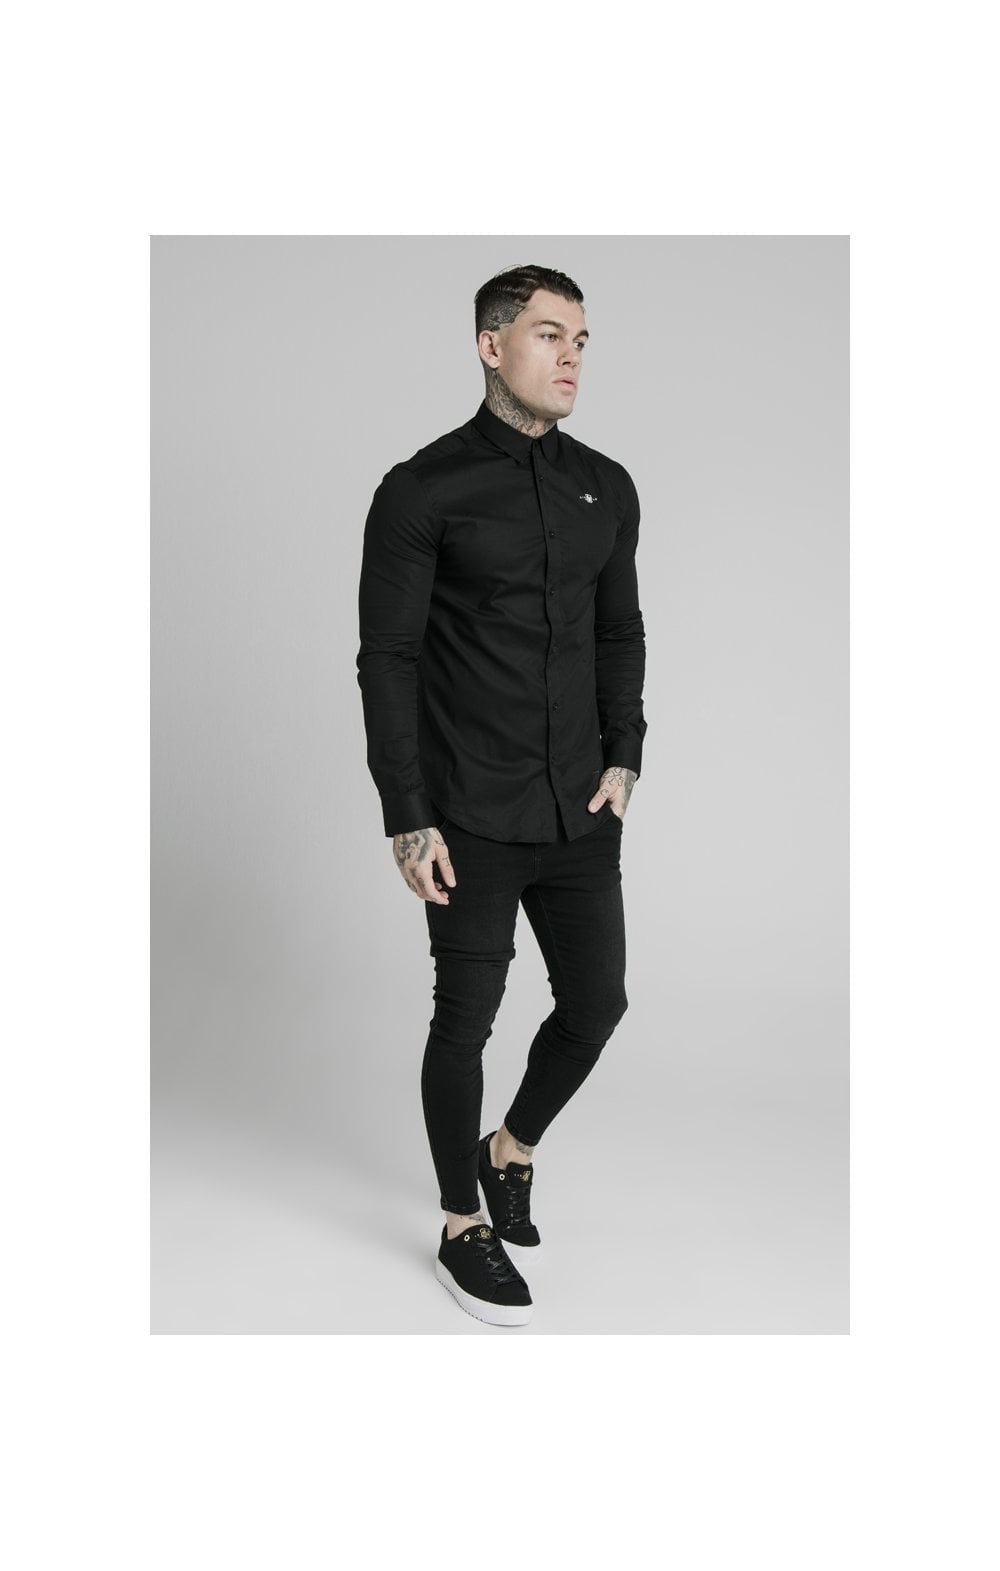 SikSilk L/S Standard Collar Shirt - Black (1)